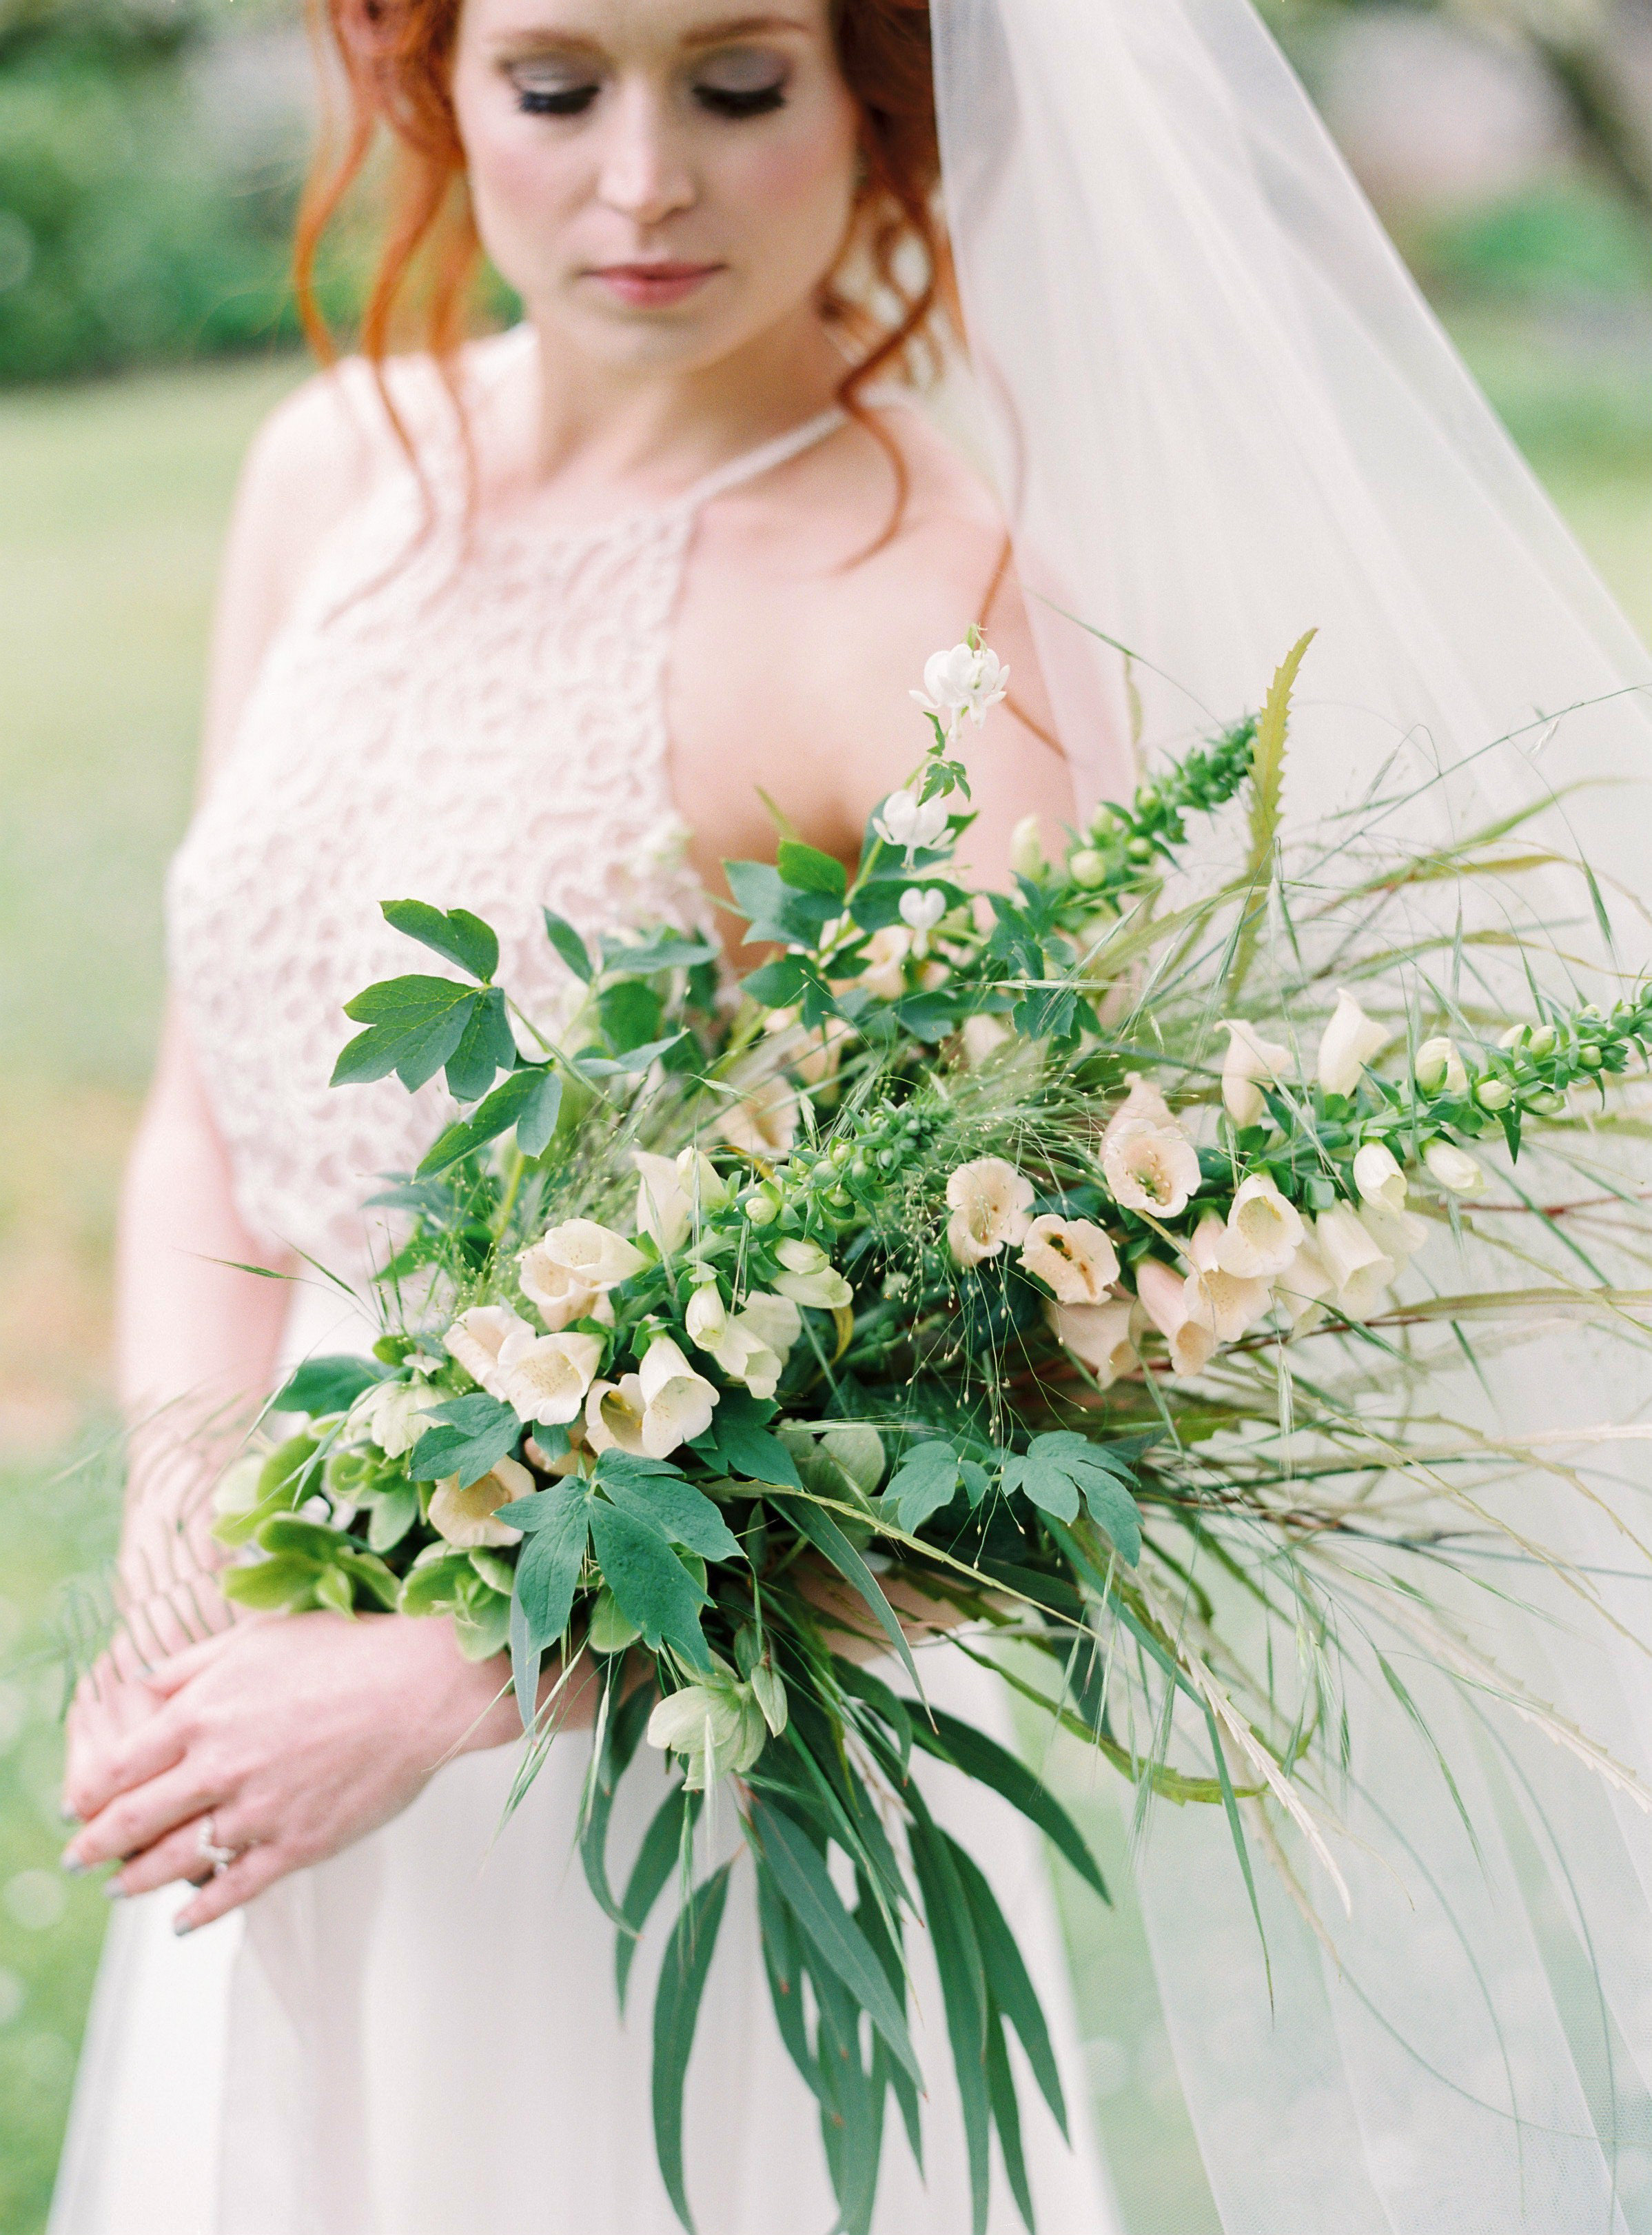 Pantone greenery, Coco Wedding Venues, 2017 trend, Katrina Otter, Lucy Davenport Photography